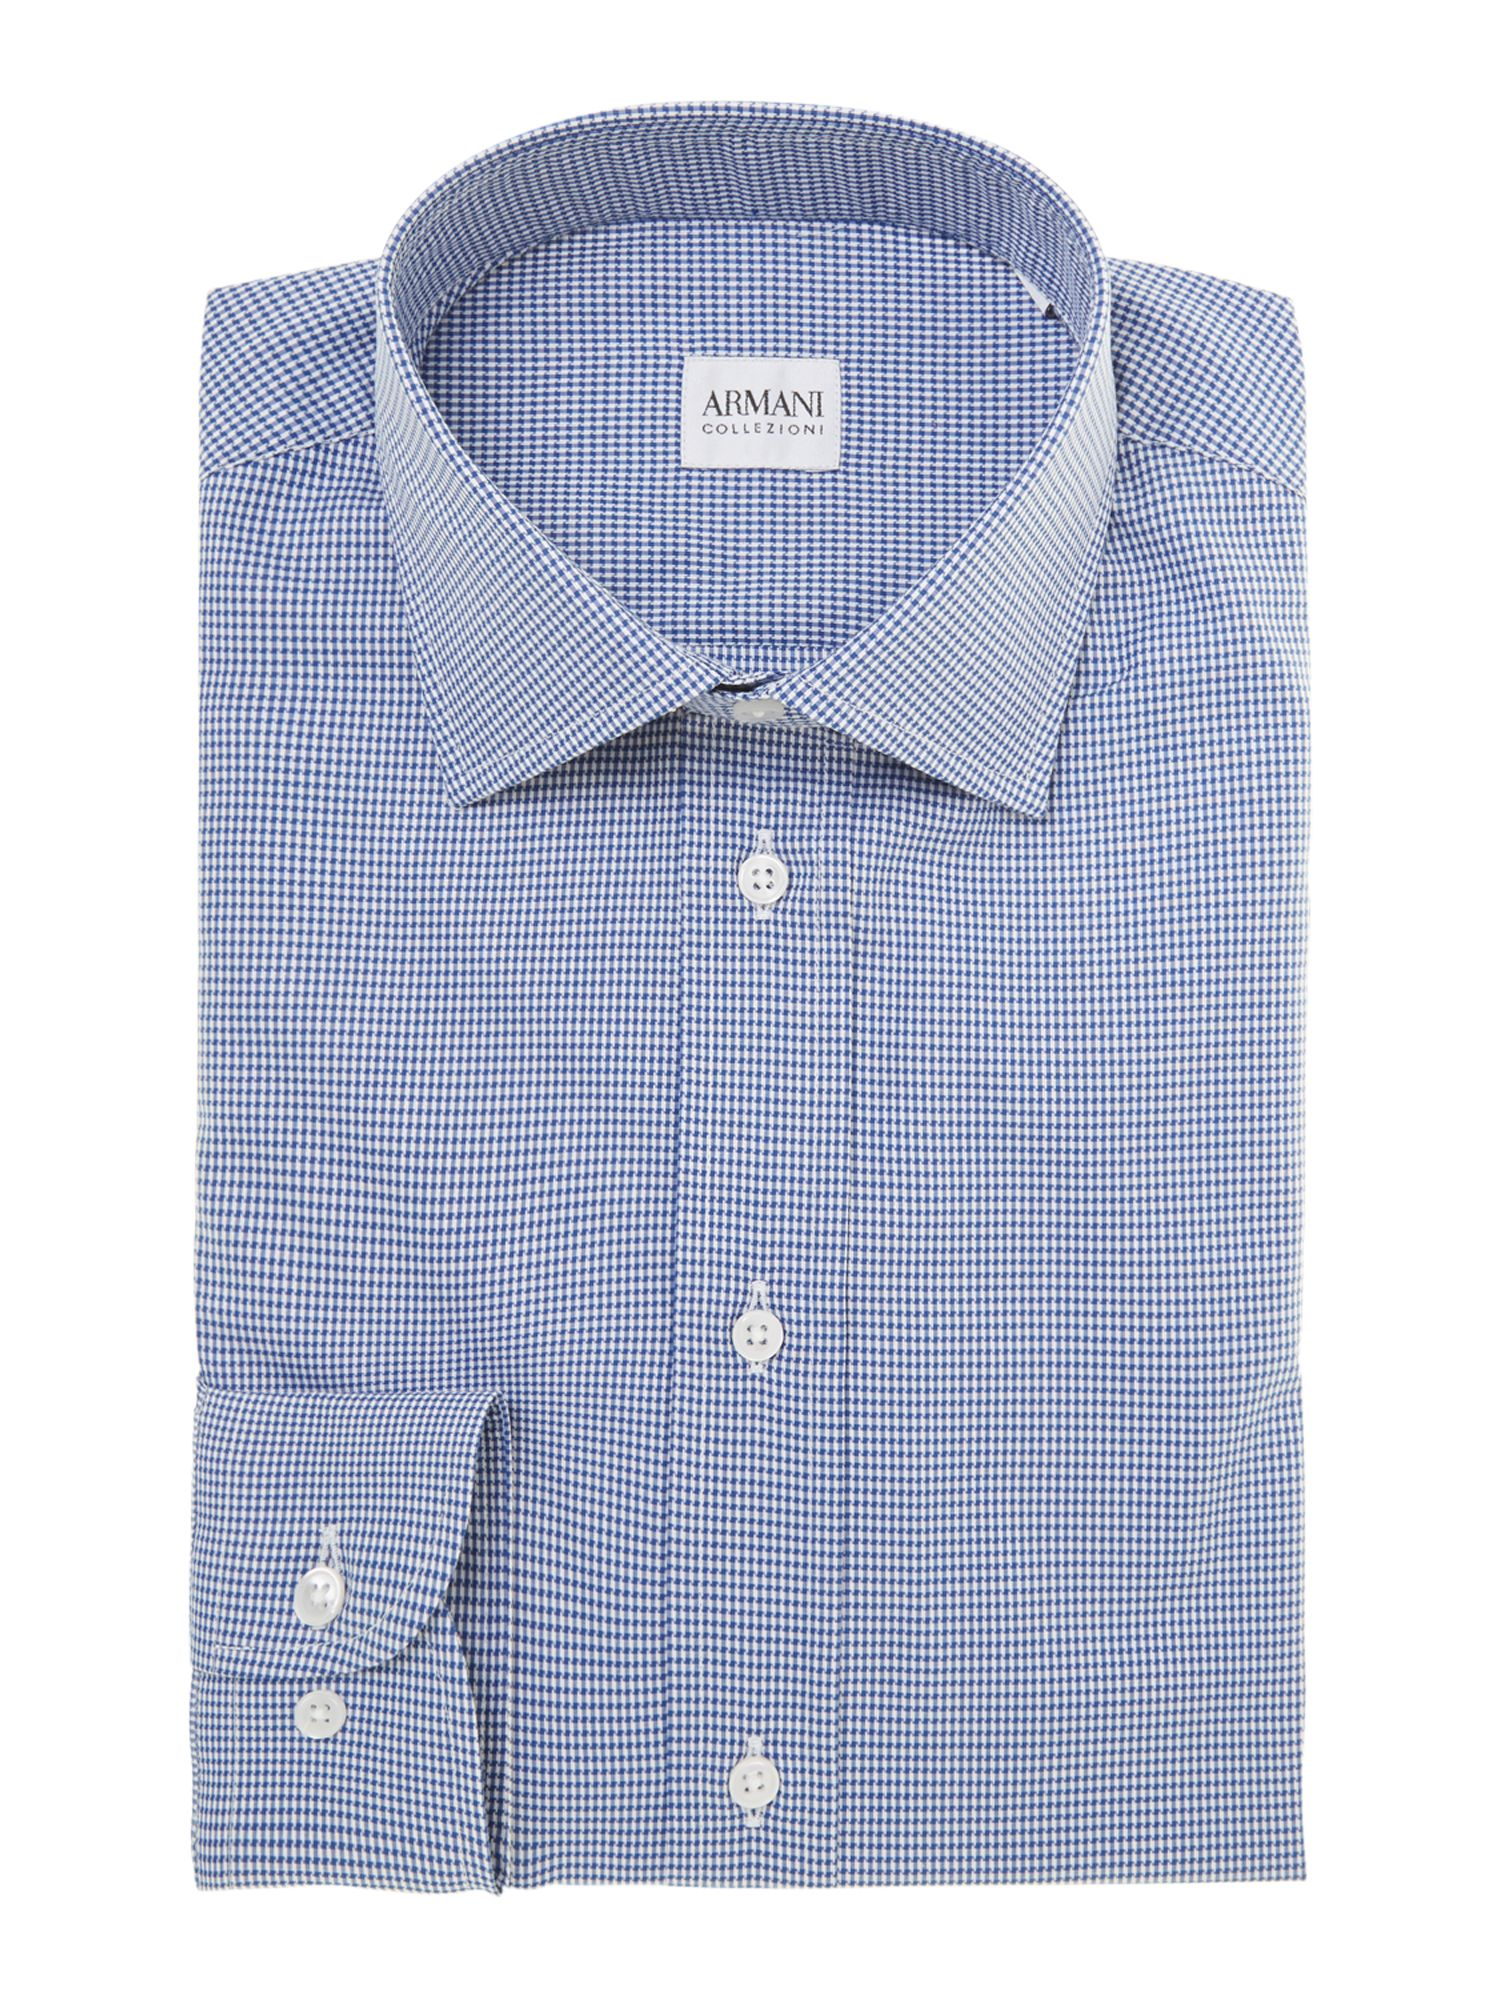 Puppytooth regular fit shirt